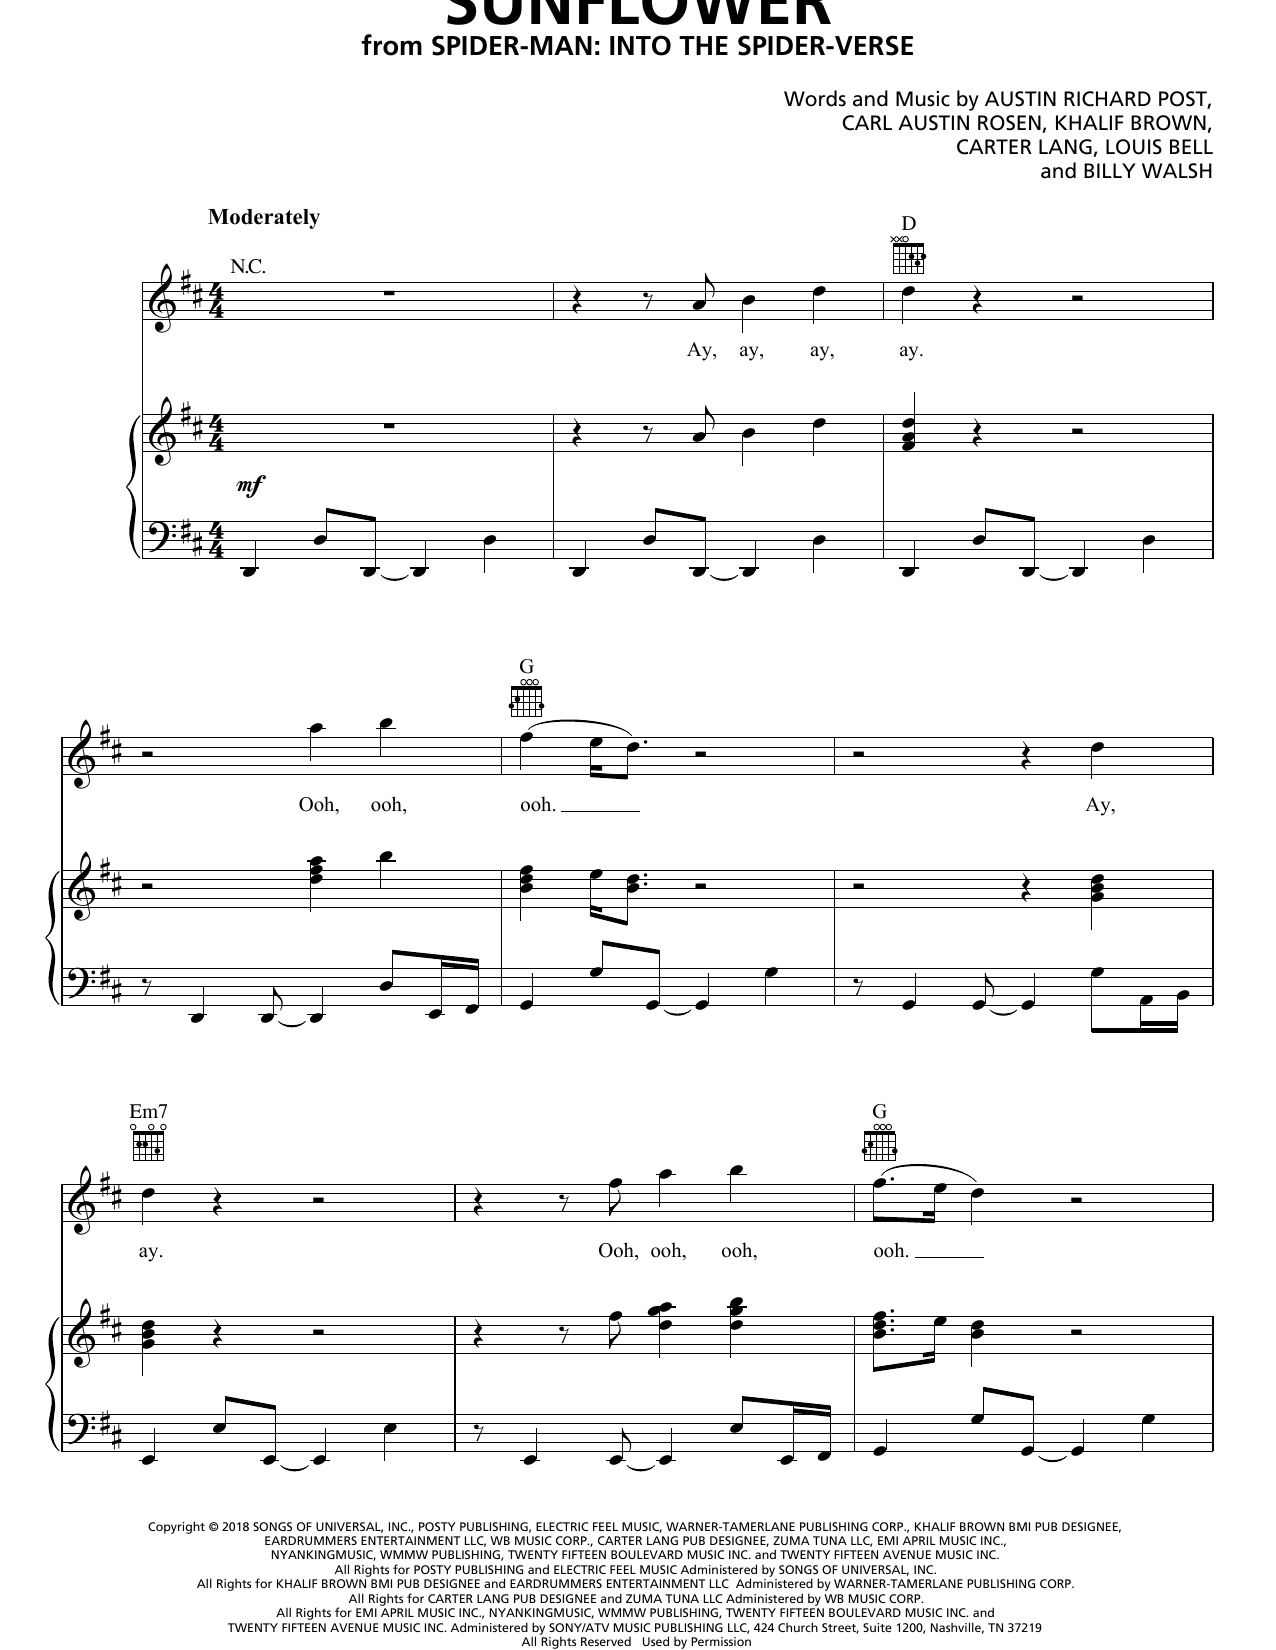 Post Malone & Swae Lee Sunflower (from Spider-Man: Into The Spider-Verse) sheet music notes and chords